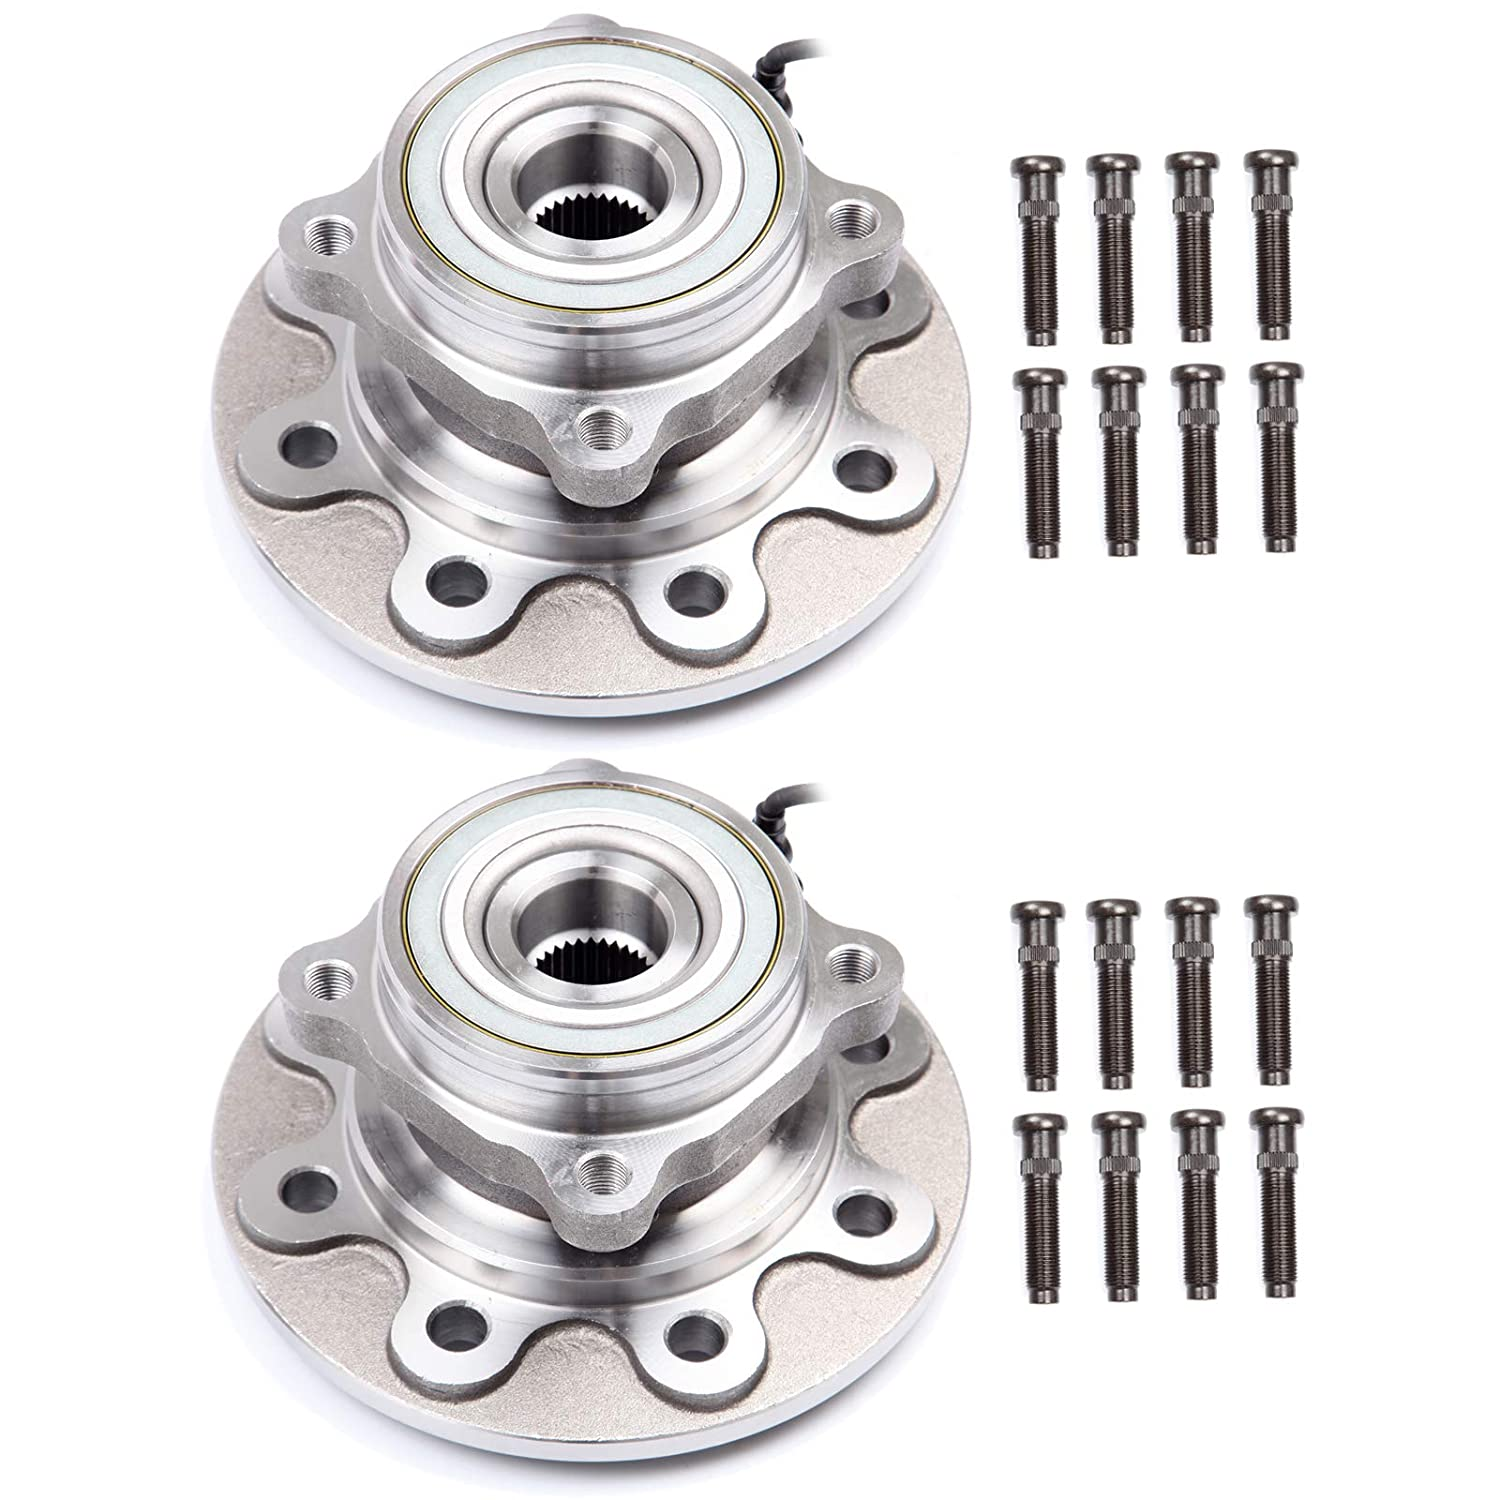 SCITOO Wheel Bearing and Hub Assembly OE 515034 for 1998-1999 Dodge Ram 2500 4WD Wheel Hub Bearing 8 Bolts W//ABS 2 Pads